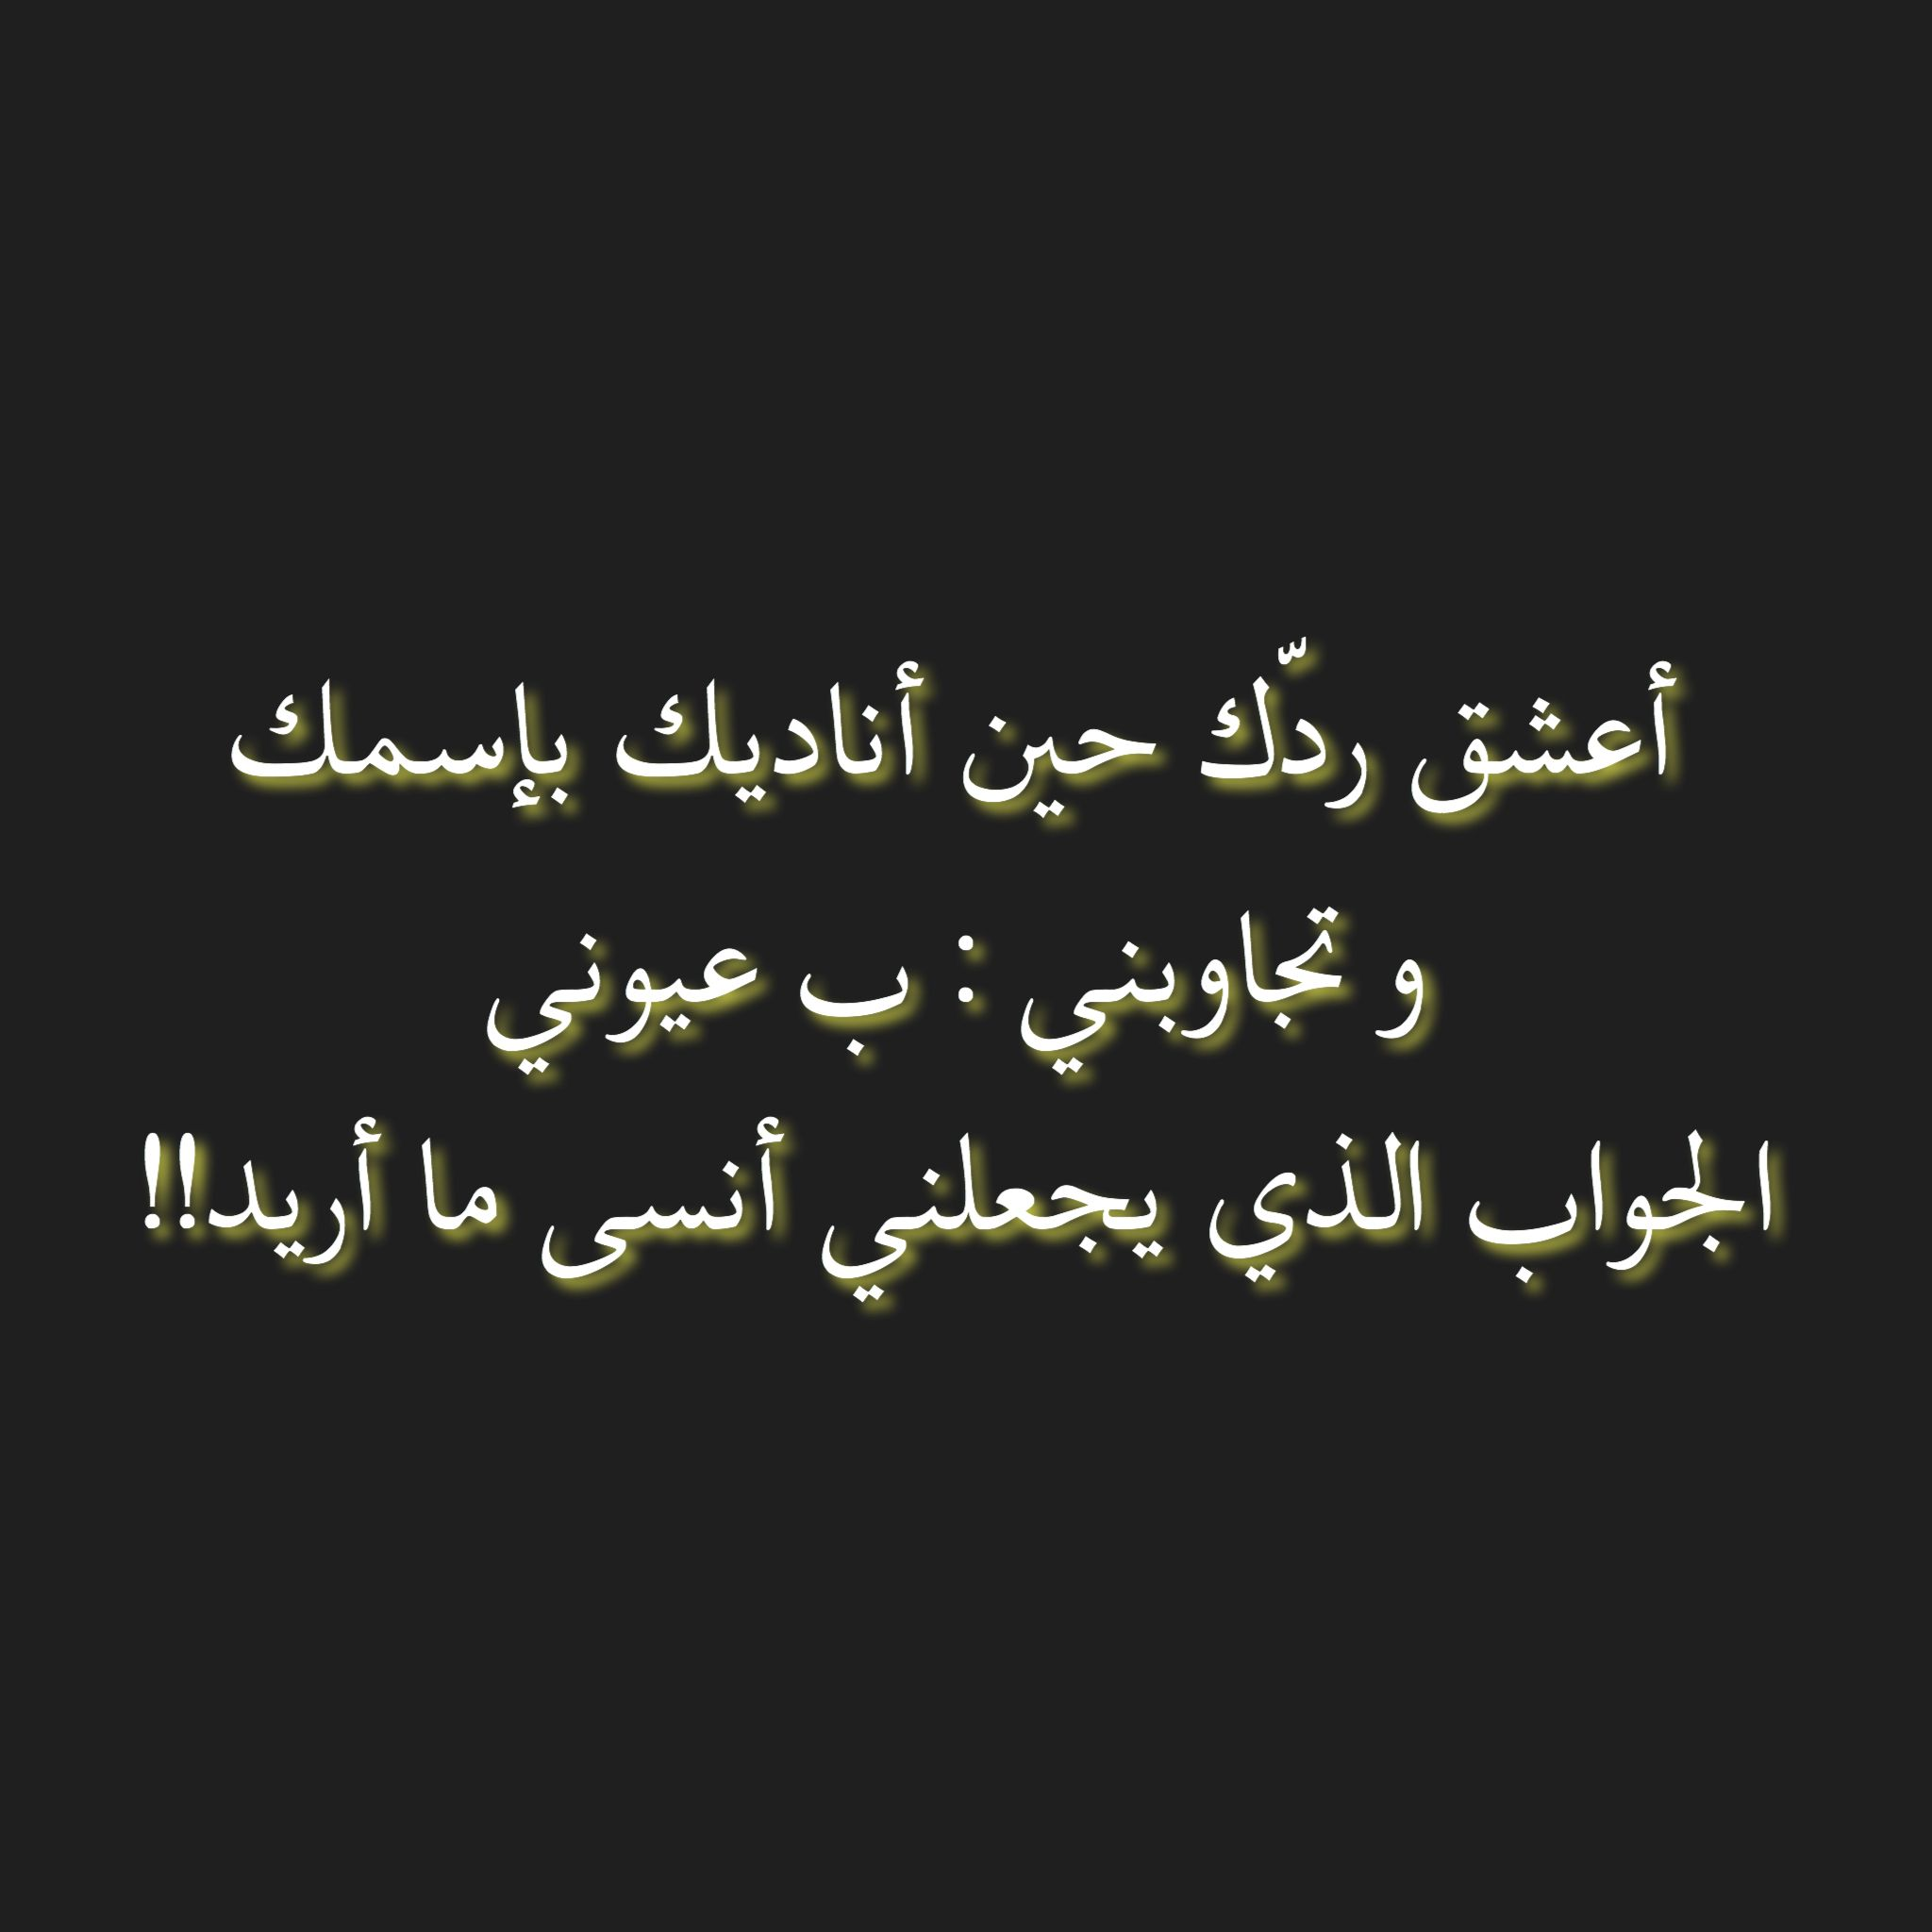 Pin By Sondos M S On كتابات راقت لي Quotes Love Words Love Quotes For Him Words